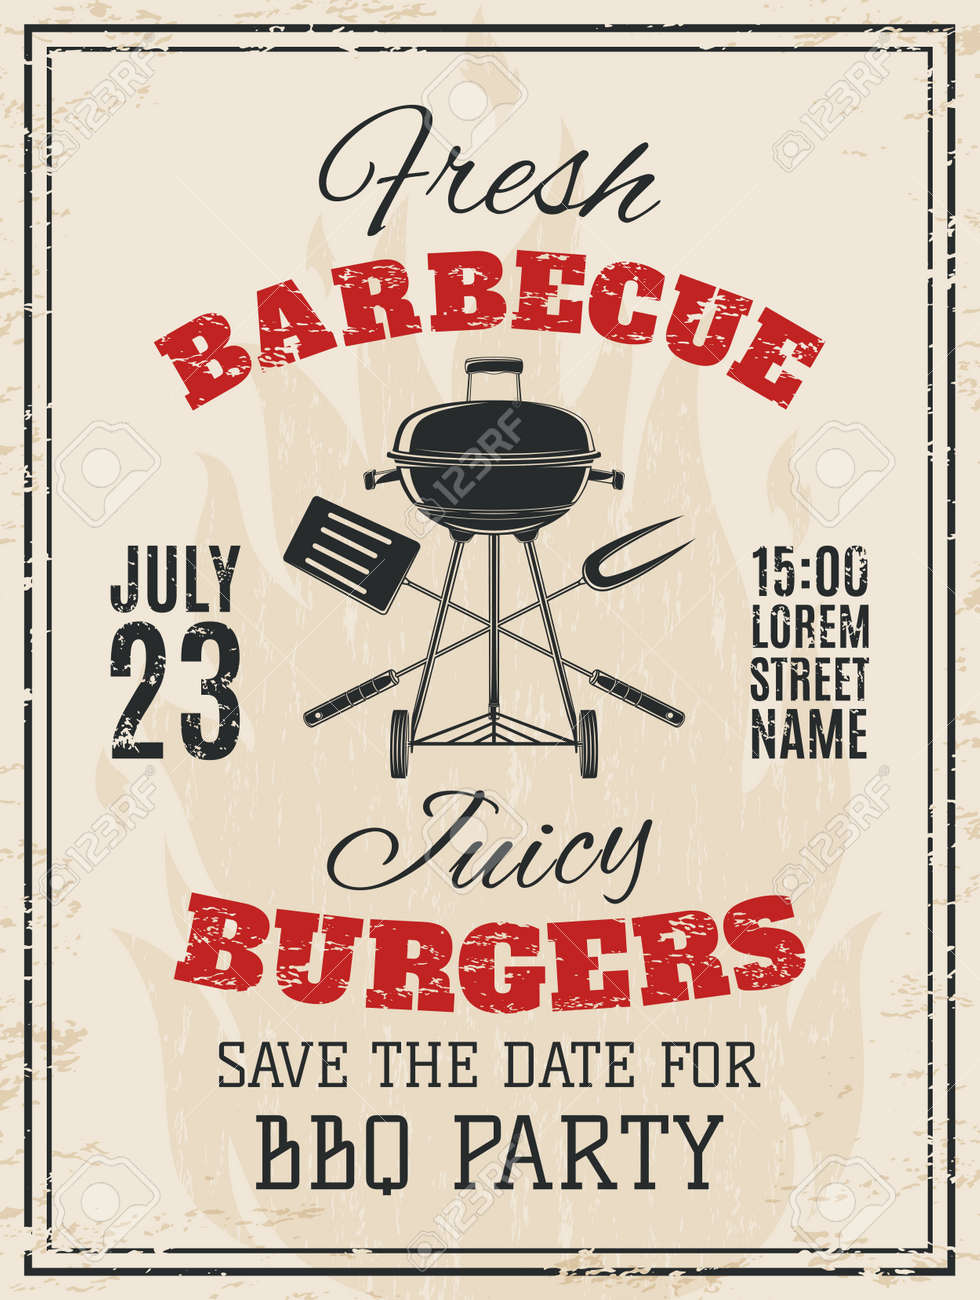 Vintage Barbecue Party Invitation. BBQ Food Flyer Template. Vector  Illustration. Stock Vector